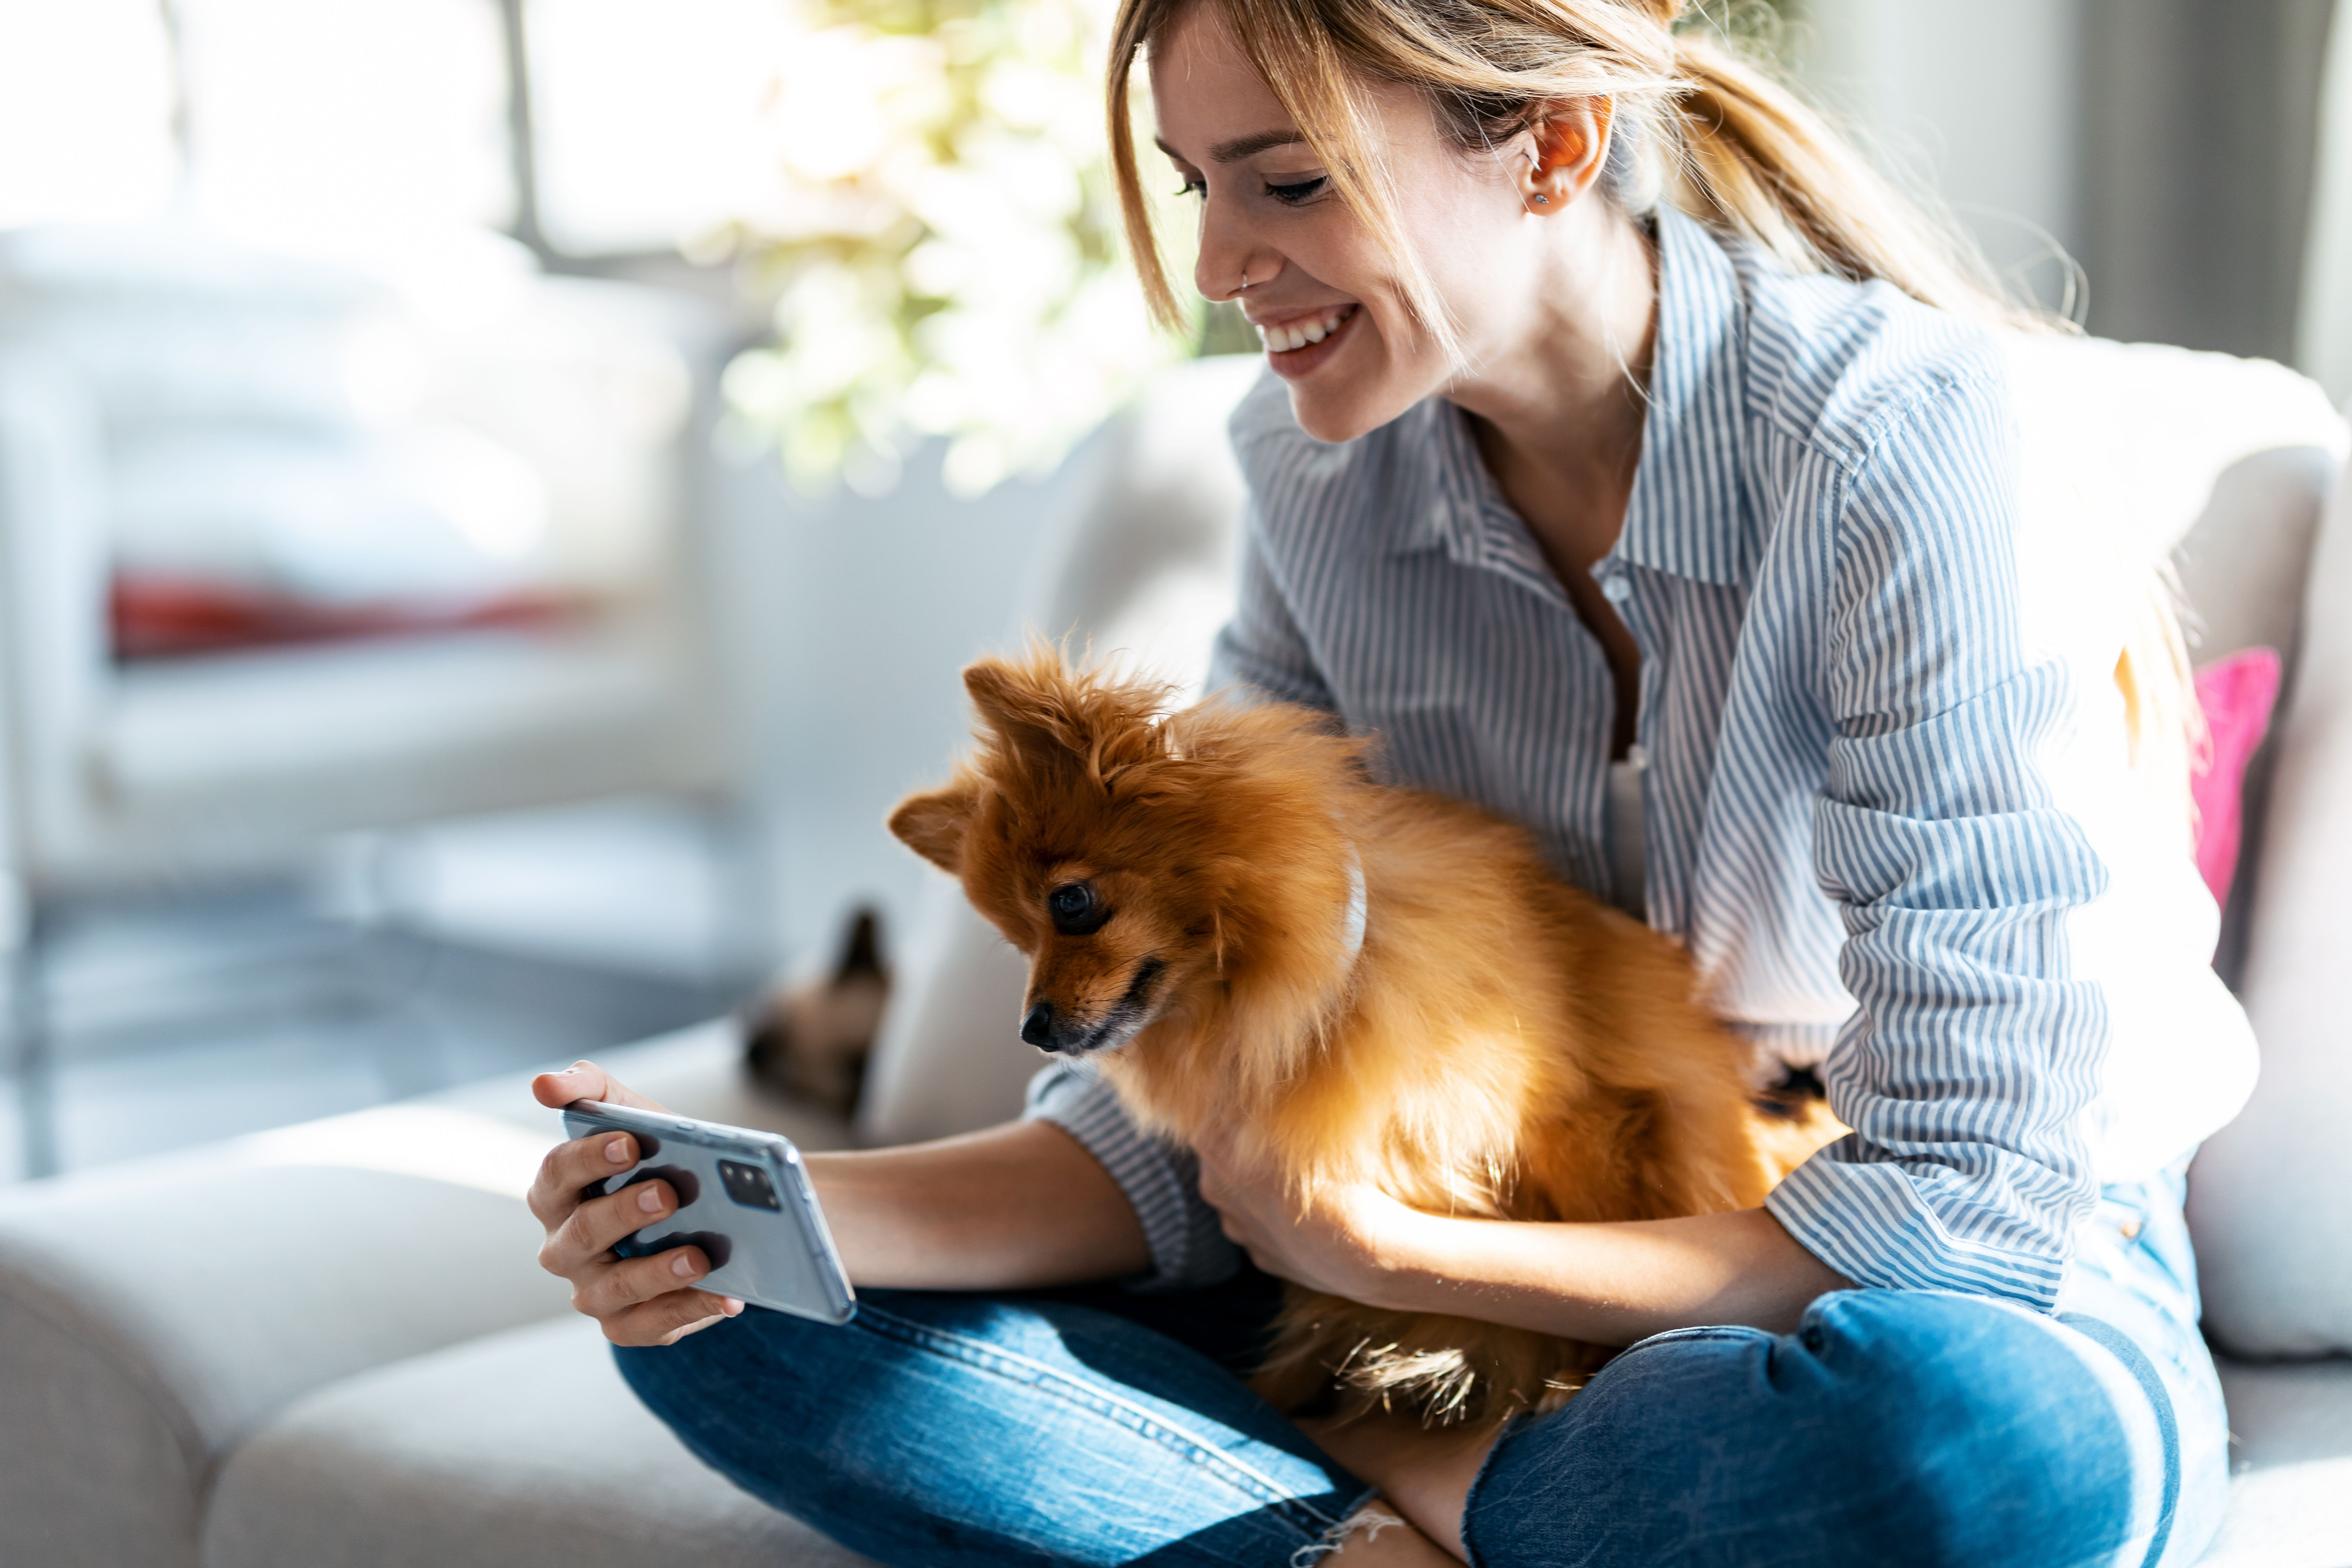 pretty woman with her cute dog using mobile phone.jpg